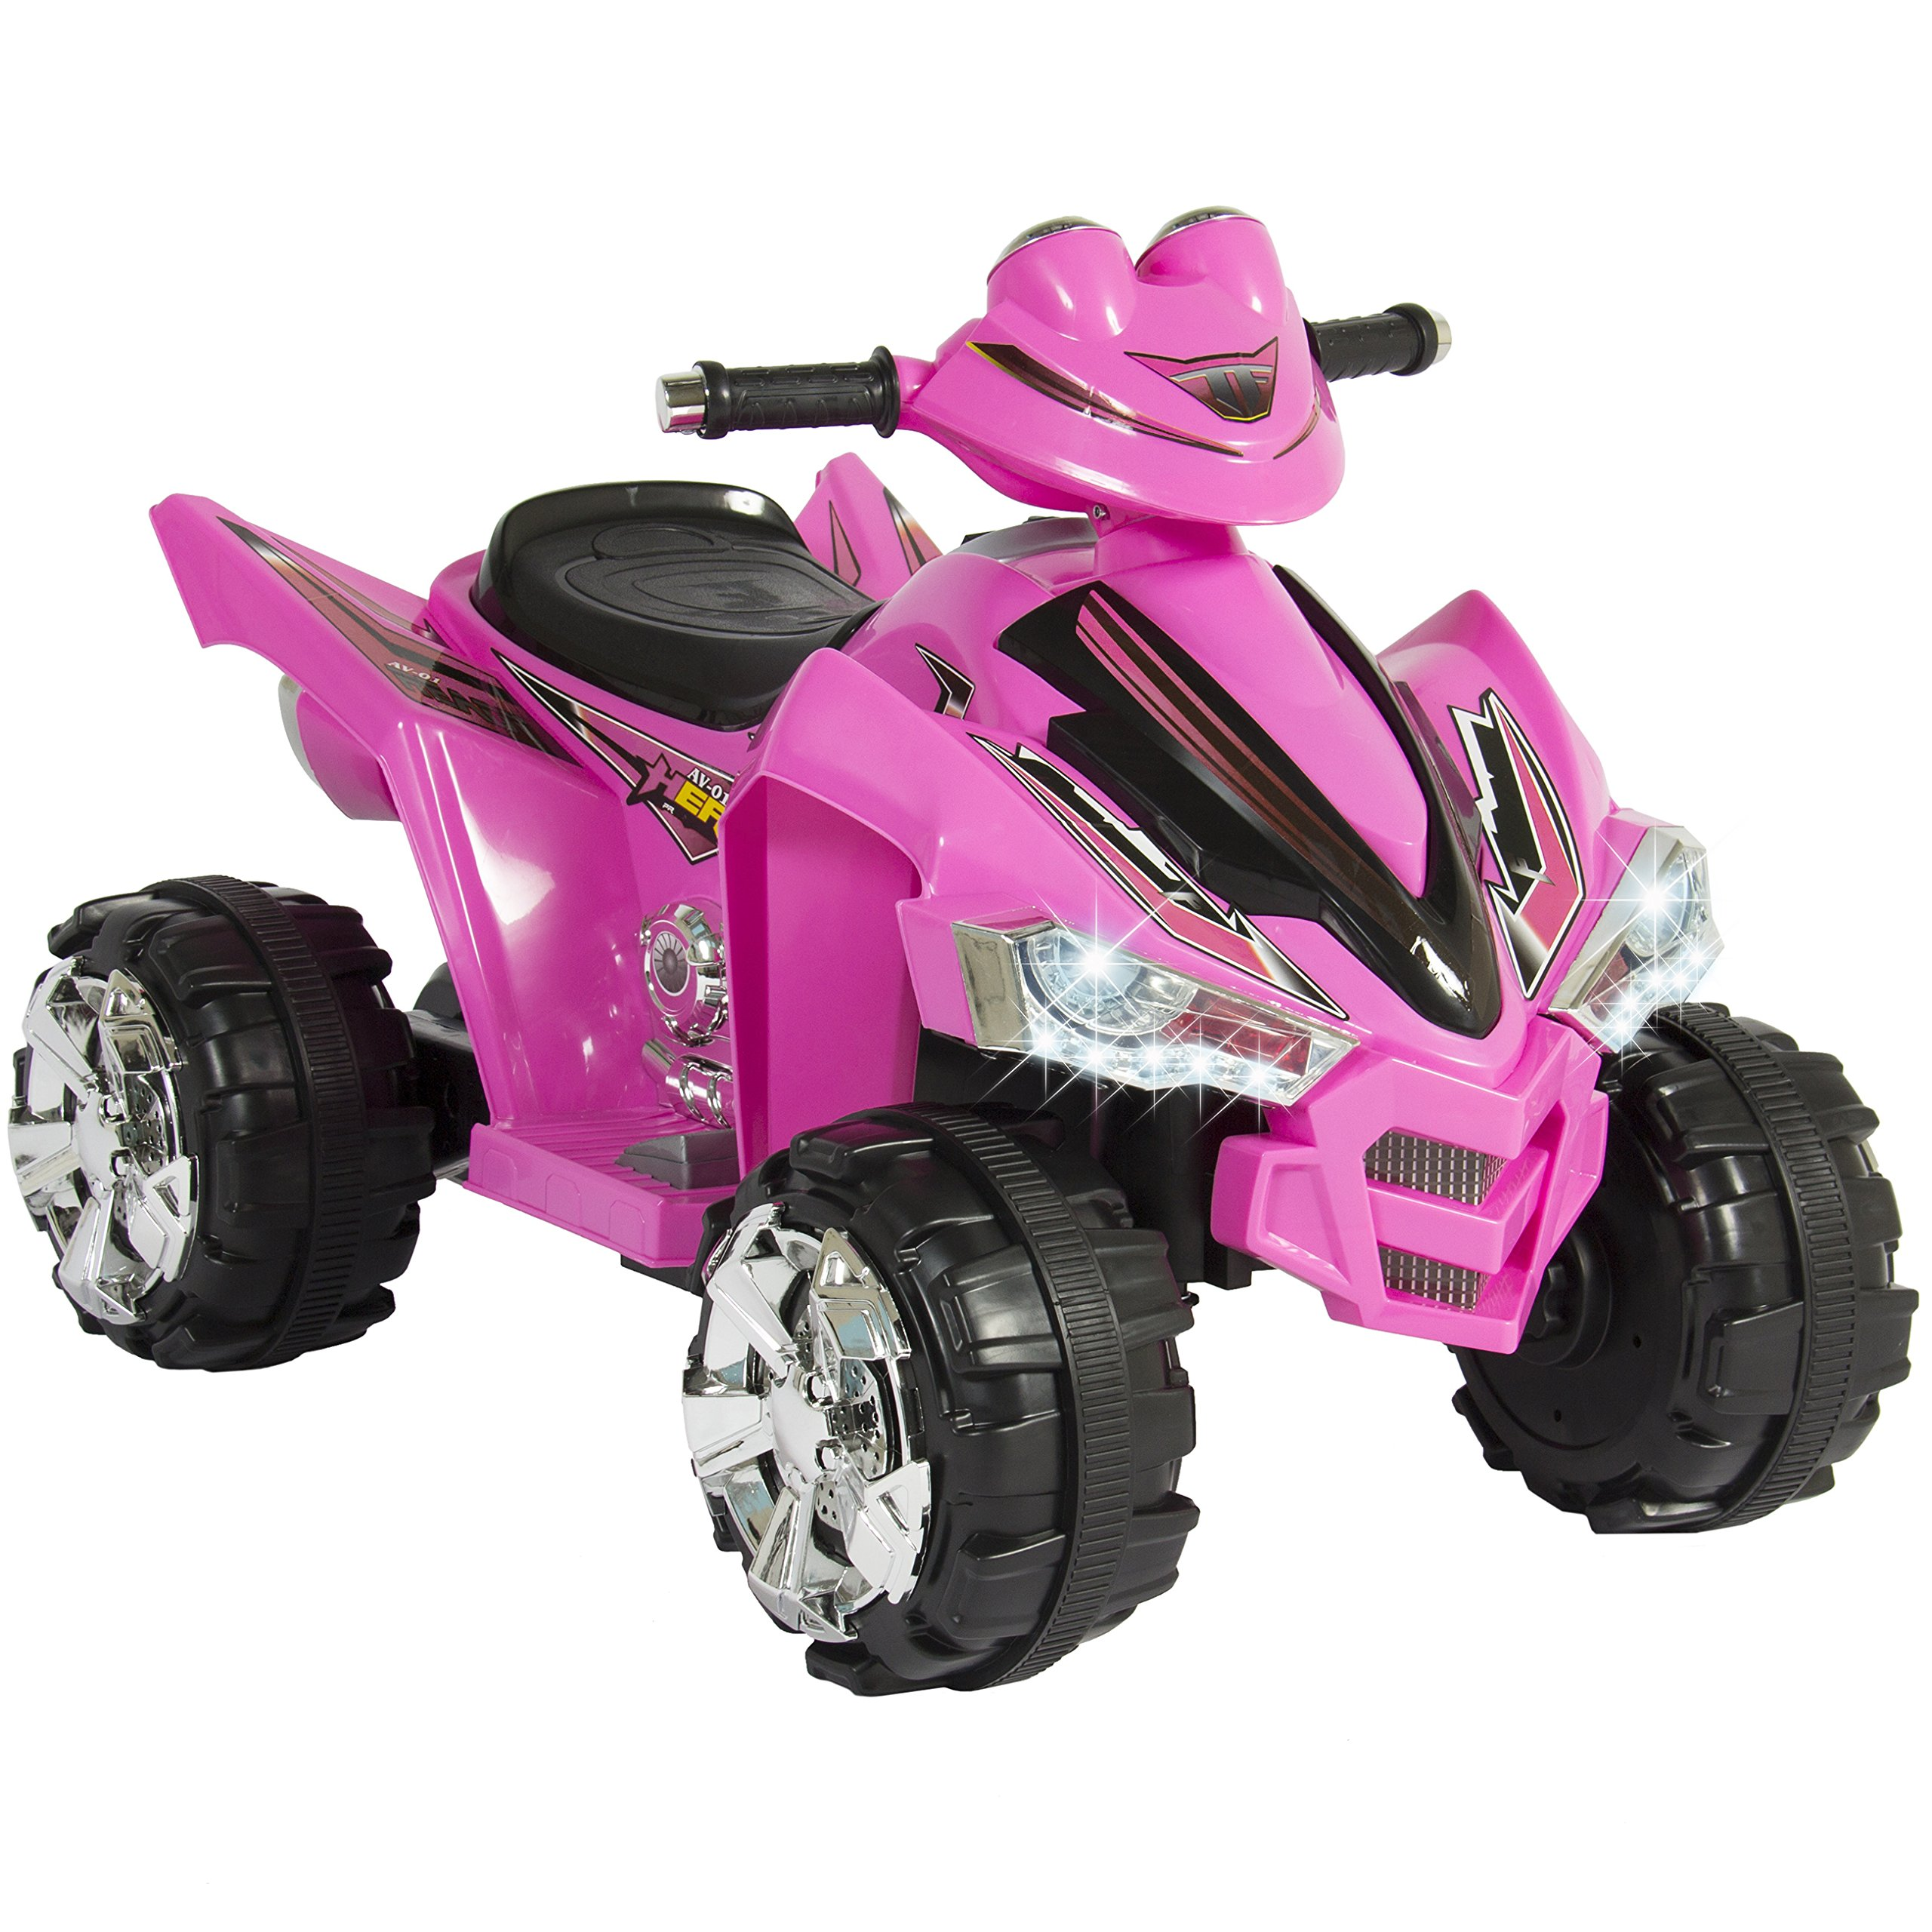 Best Choice Products Pink Kids Ride On ATV Quad 4 Wheeler 12V Battery Electric Power Led Lights Music by Best Choice Products